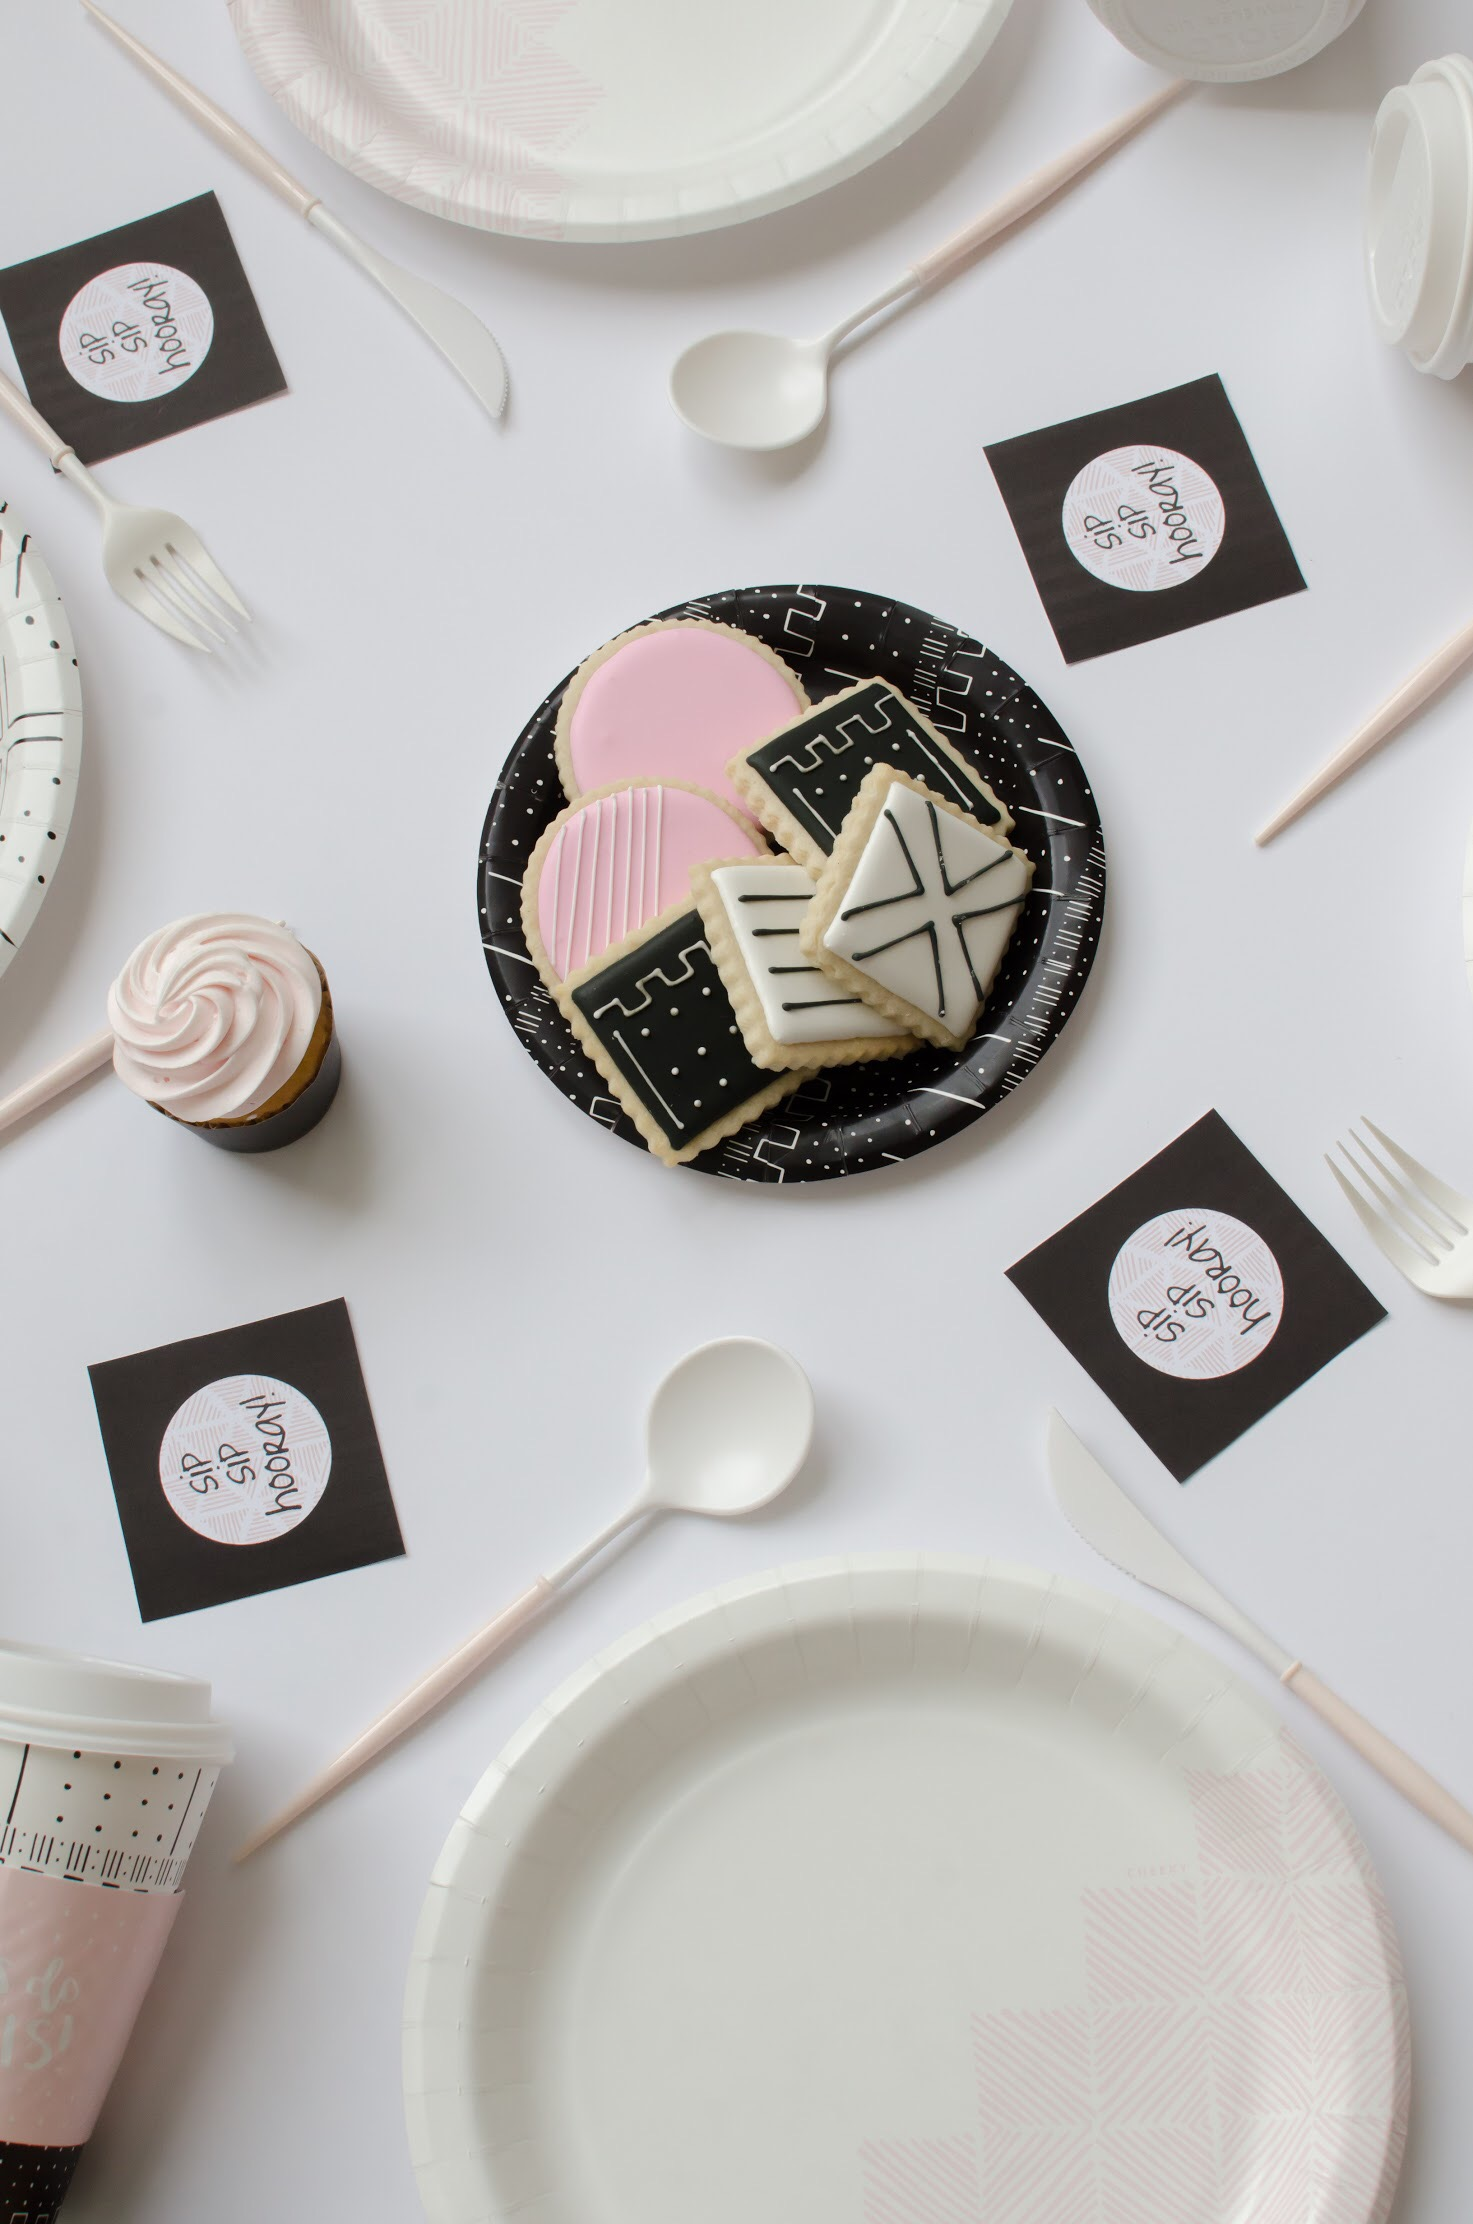 Love the look of this modern party table! The geometric design is awesome! Perfect for a bridal shower or baby shower!